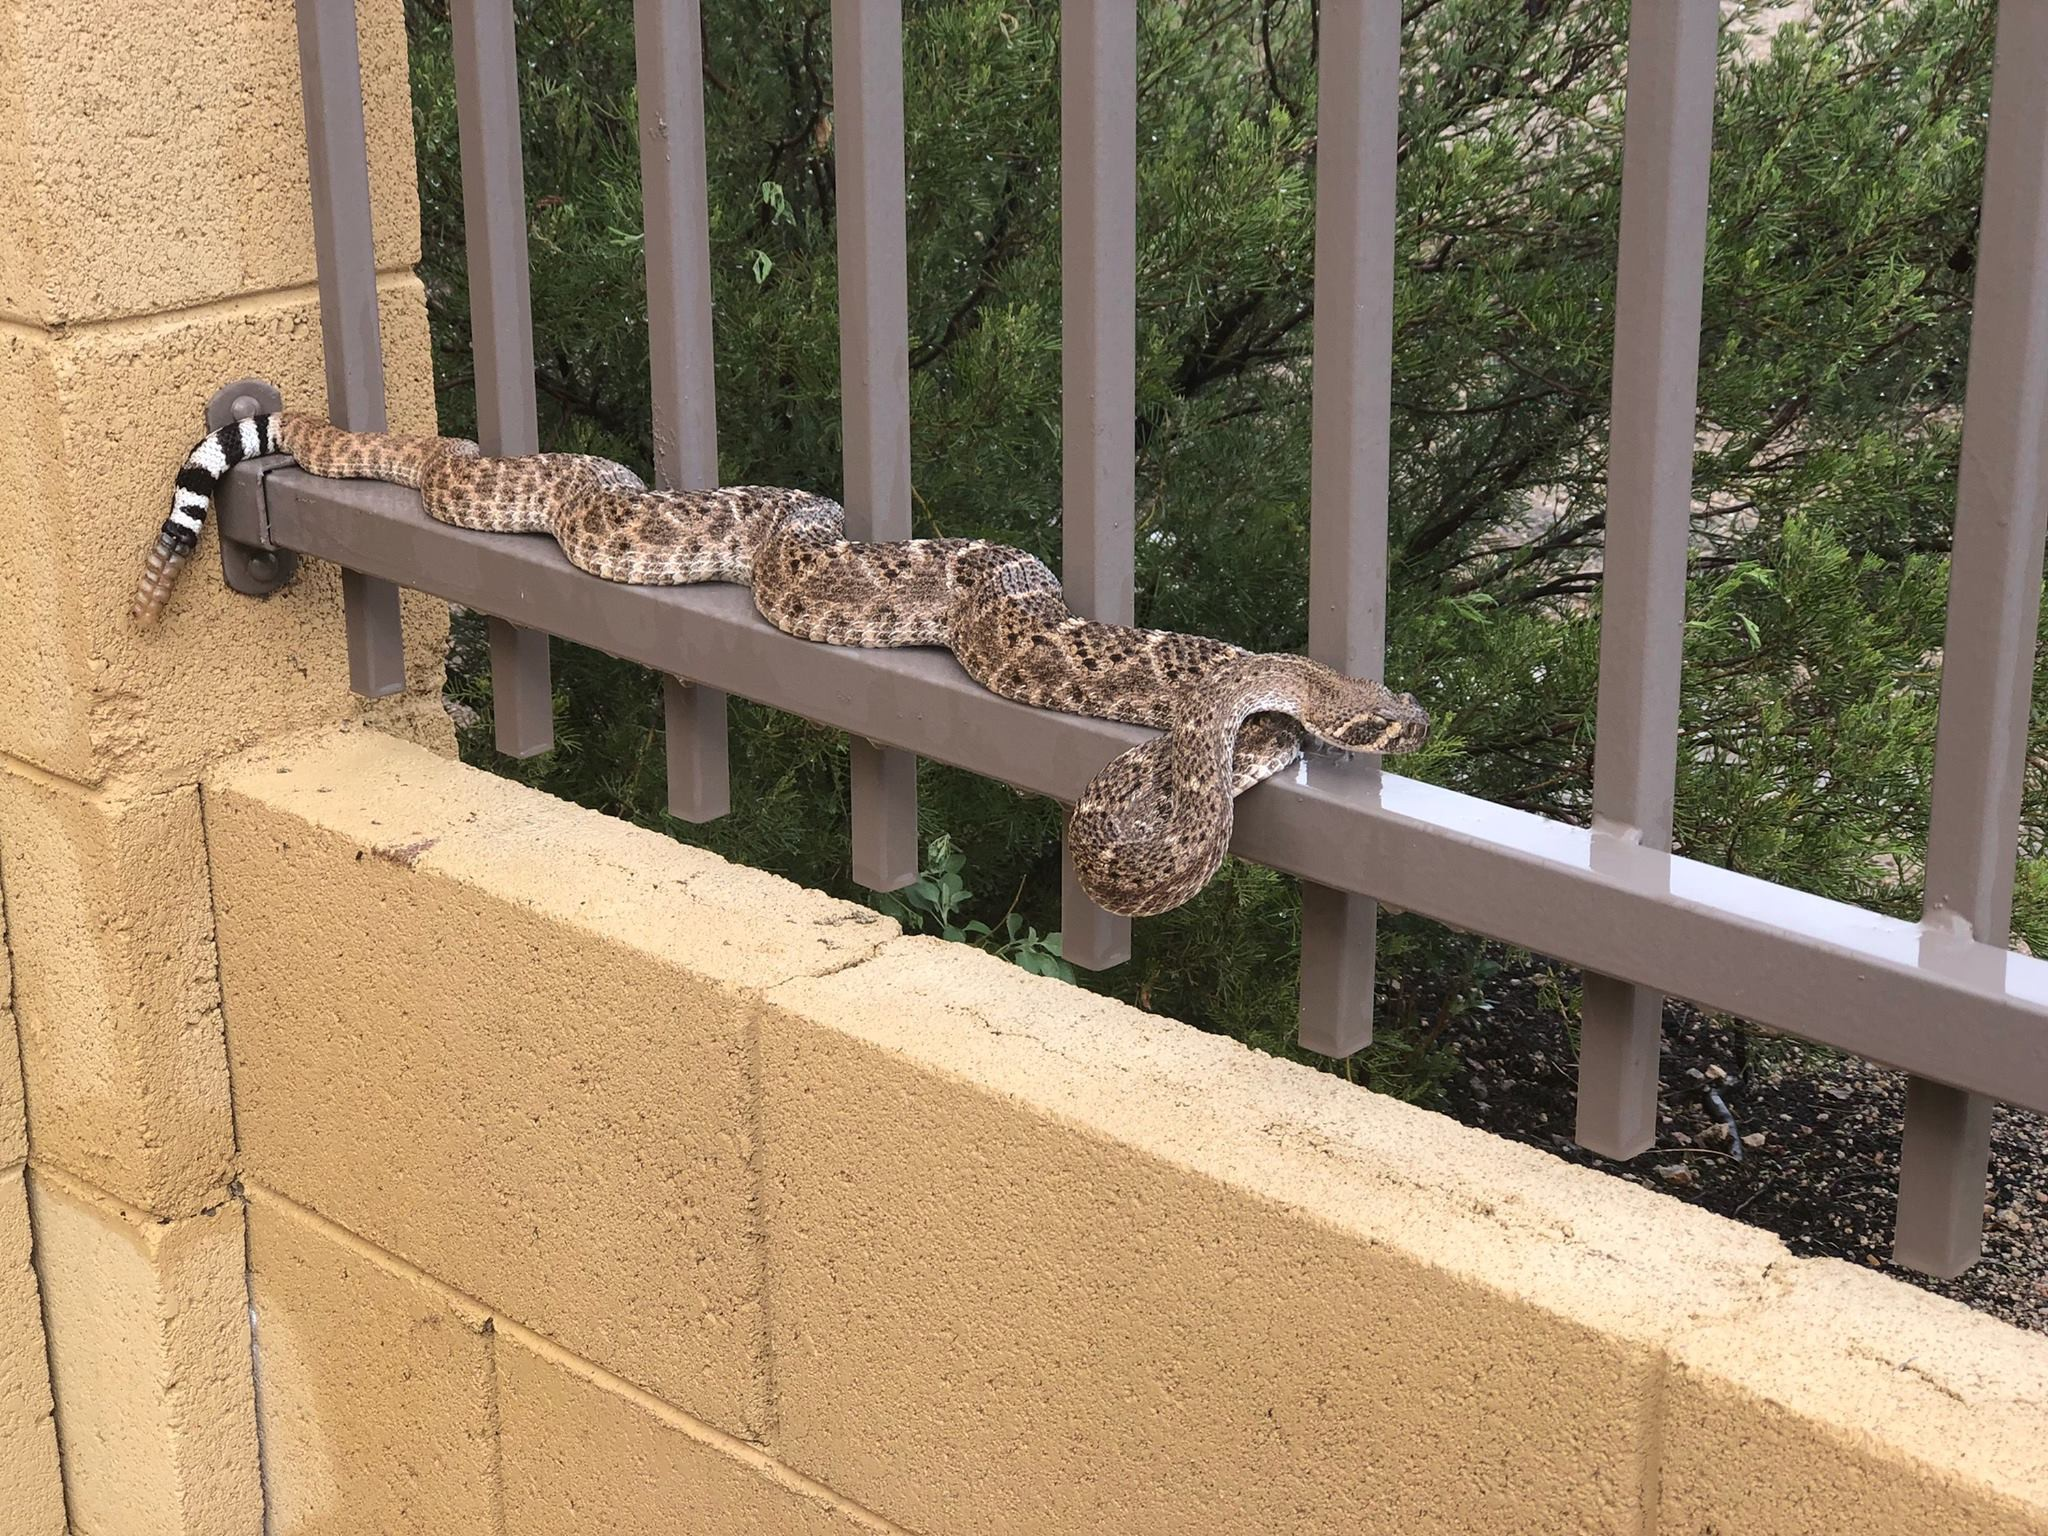 10 Important Things to Look for in a Rattlesnake Fence